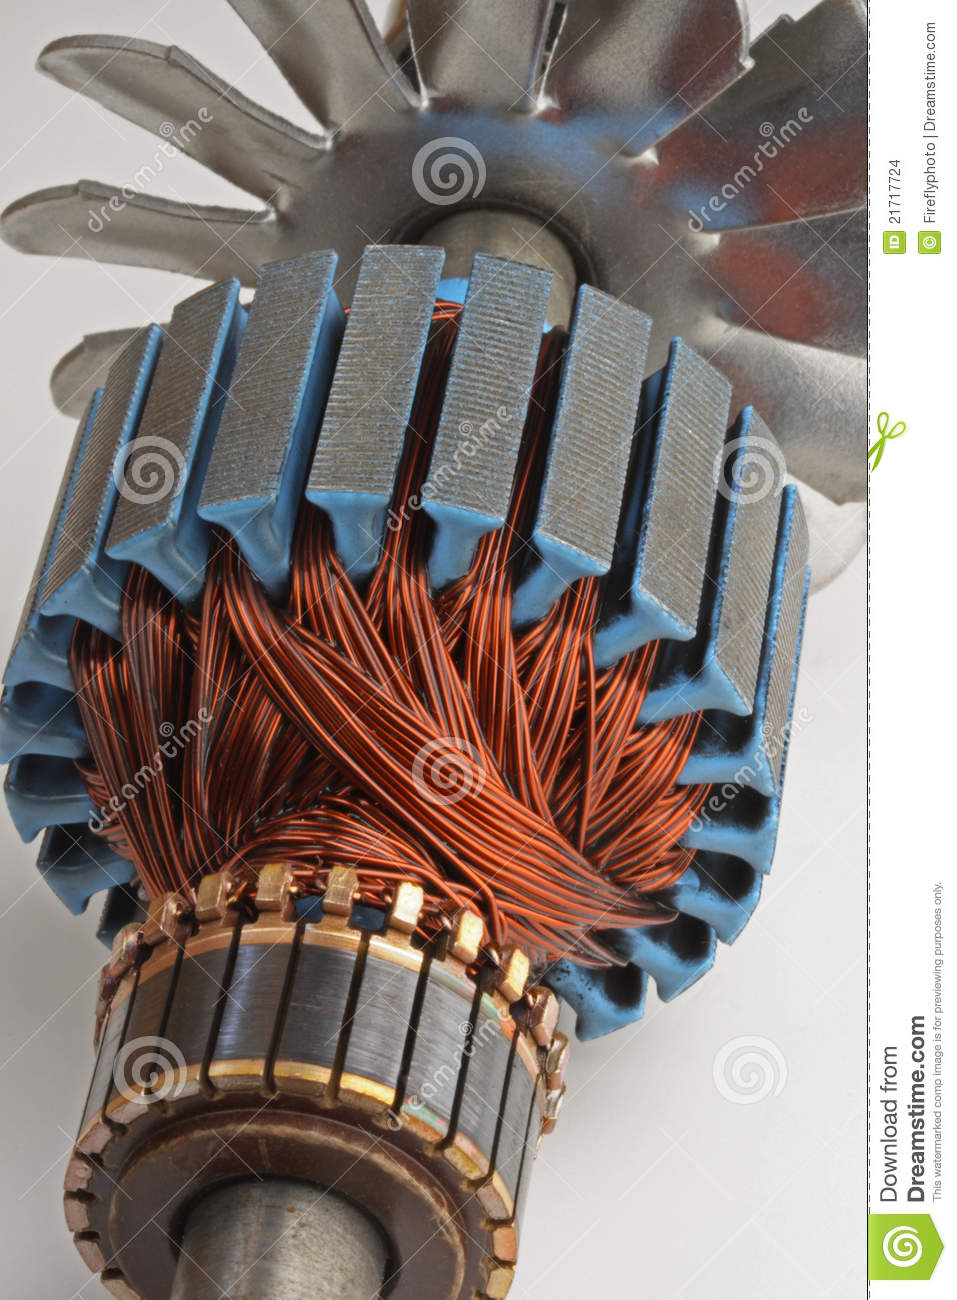 Copper Coils From Electric Motor Stock Photo